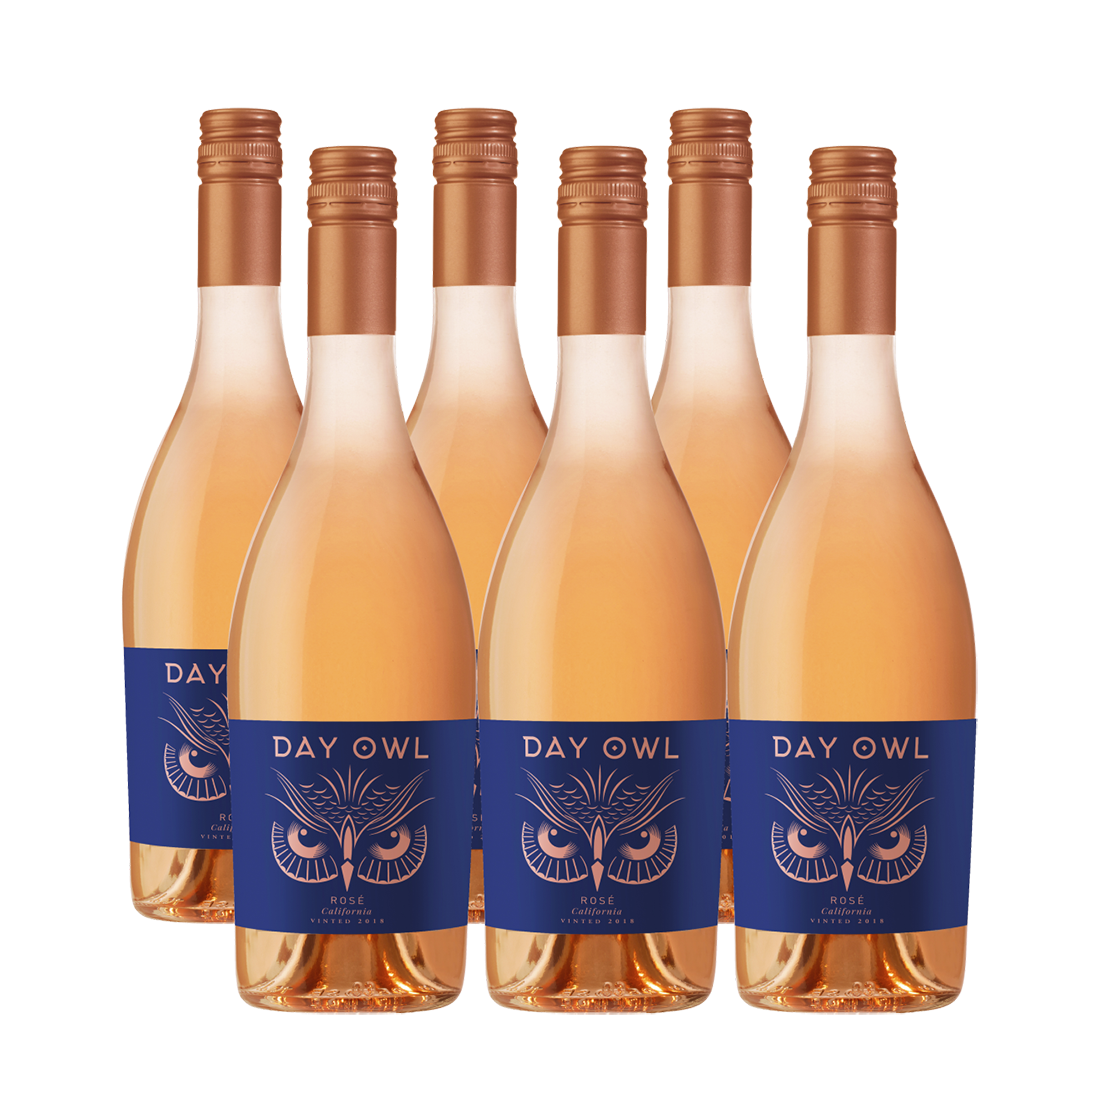 Day Owl Rosé 6 bottle pack